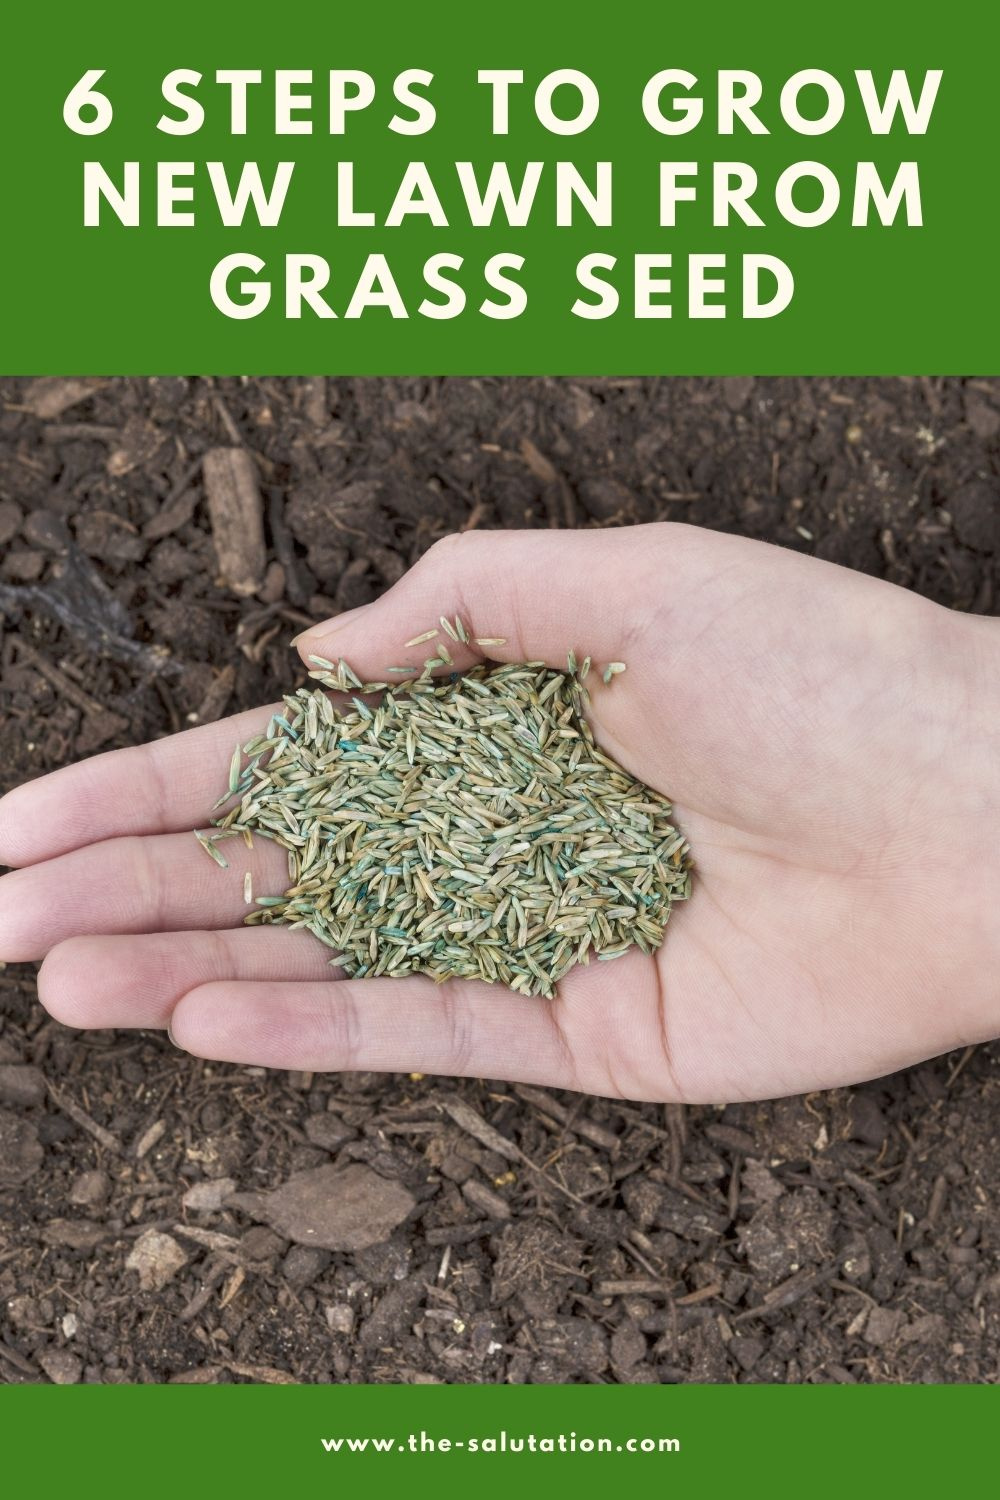 6 Steps to Grow New Lawn from Grass Seed 1